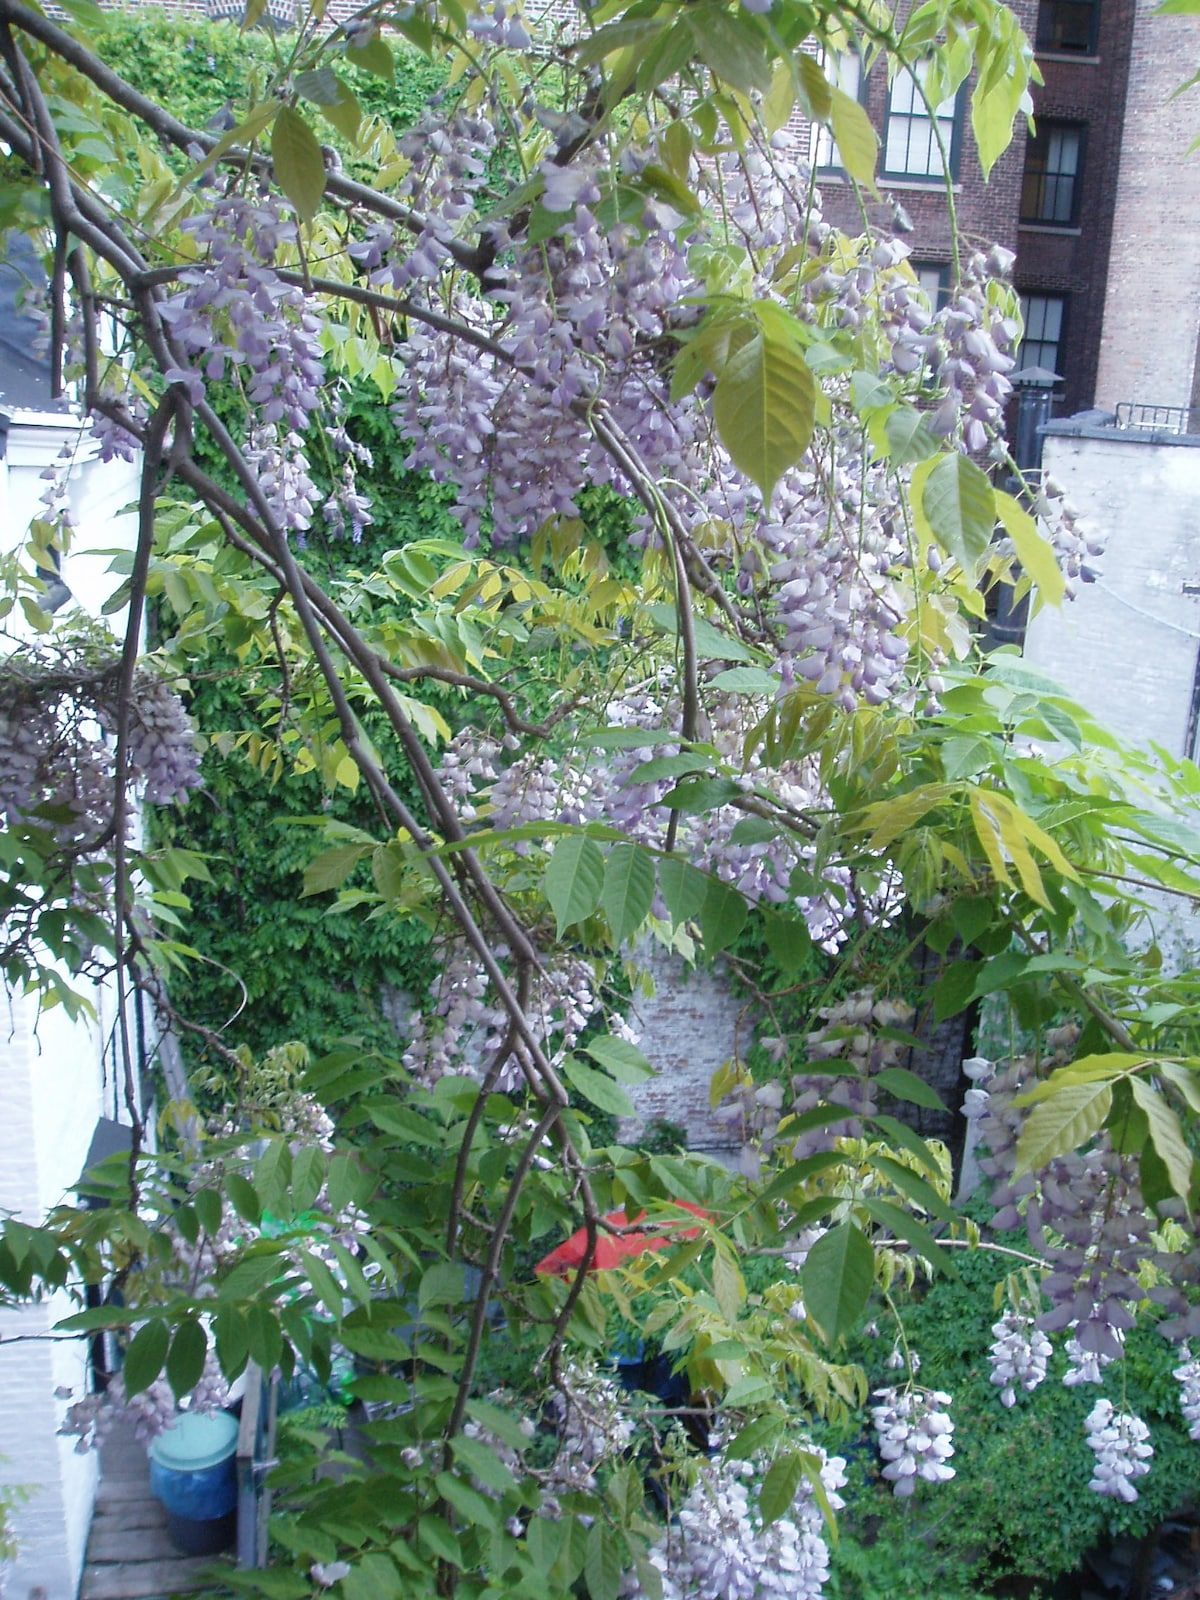 More Wisteria out on the fire escape